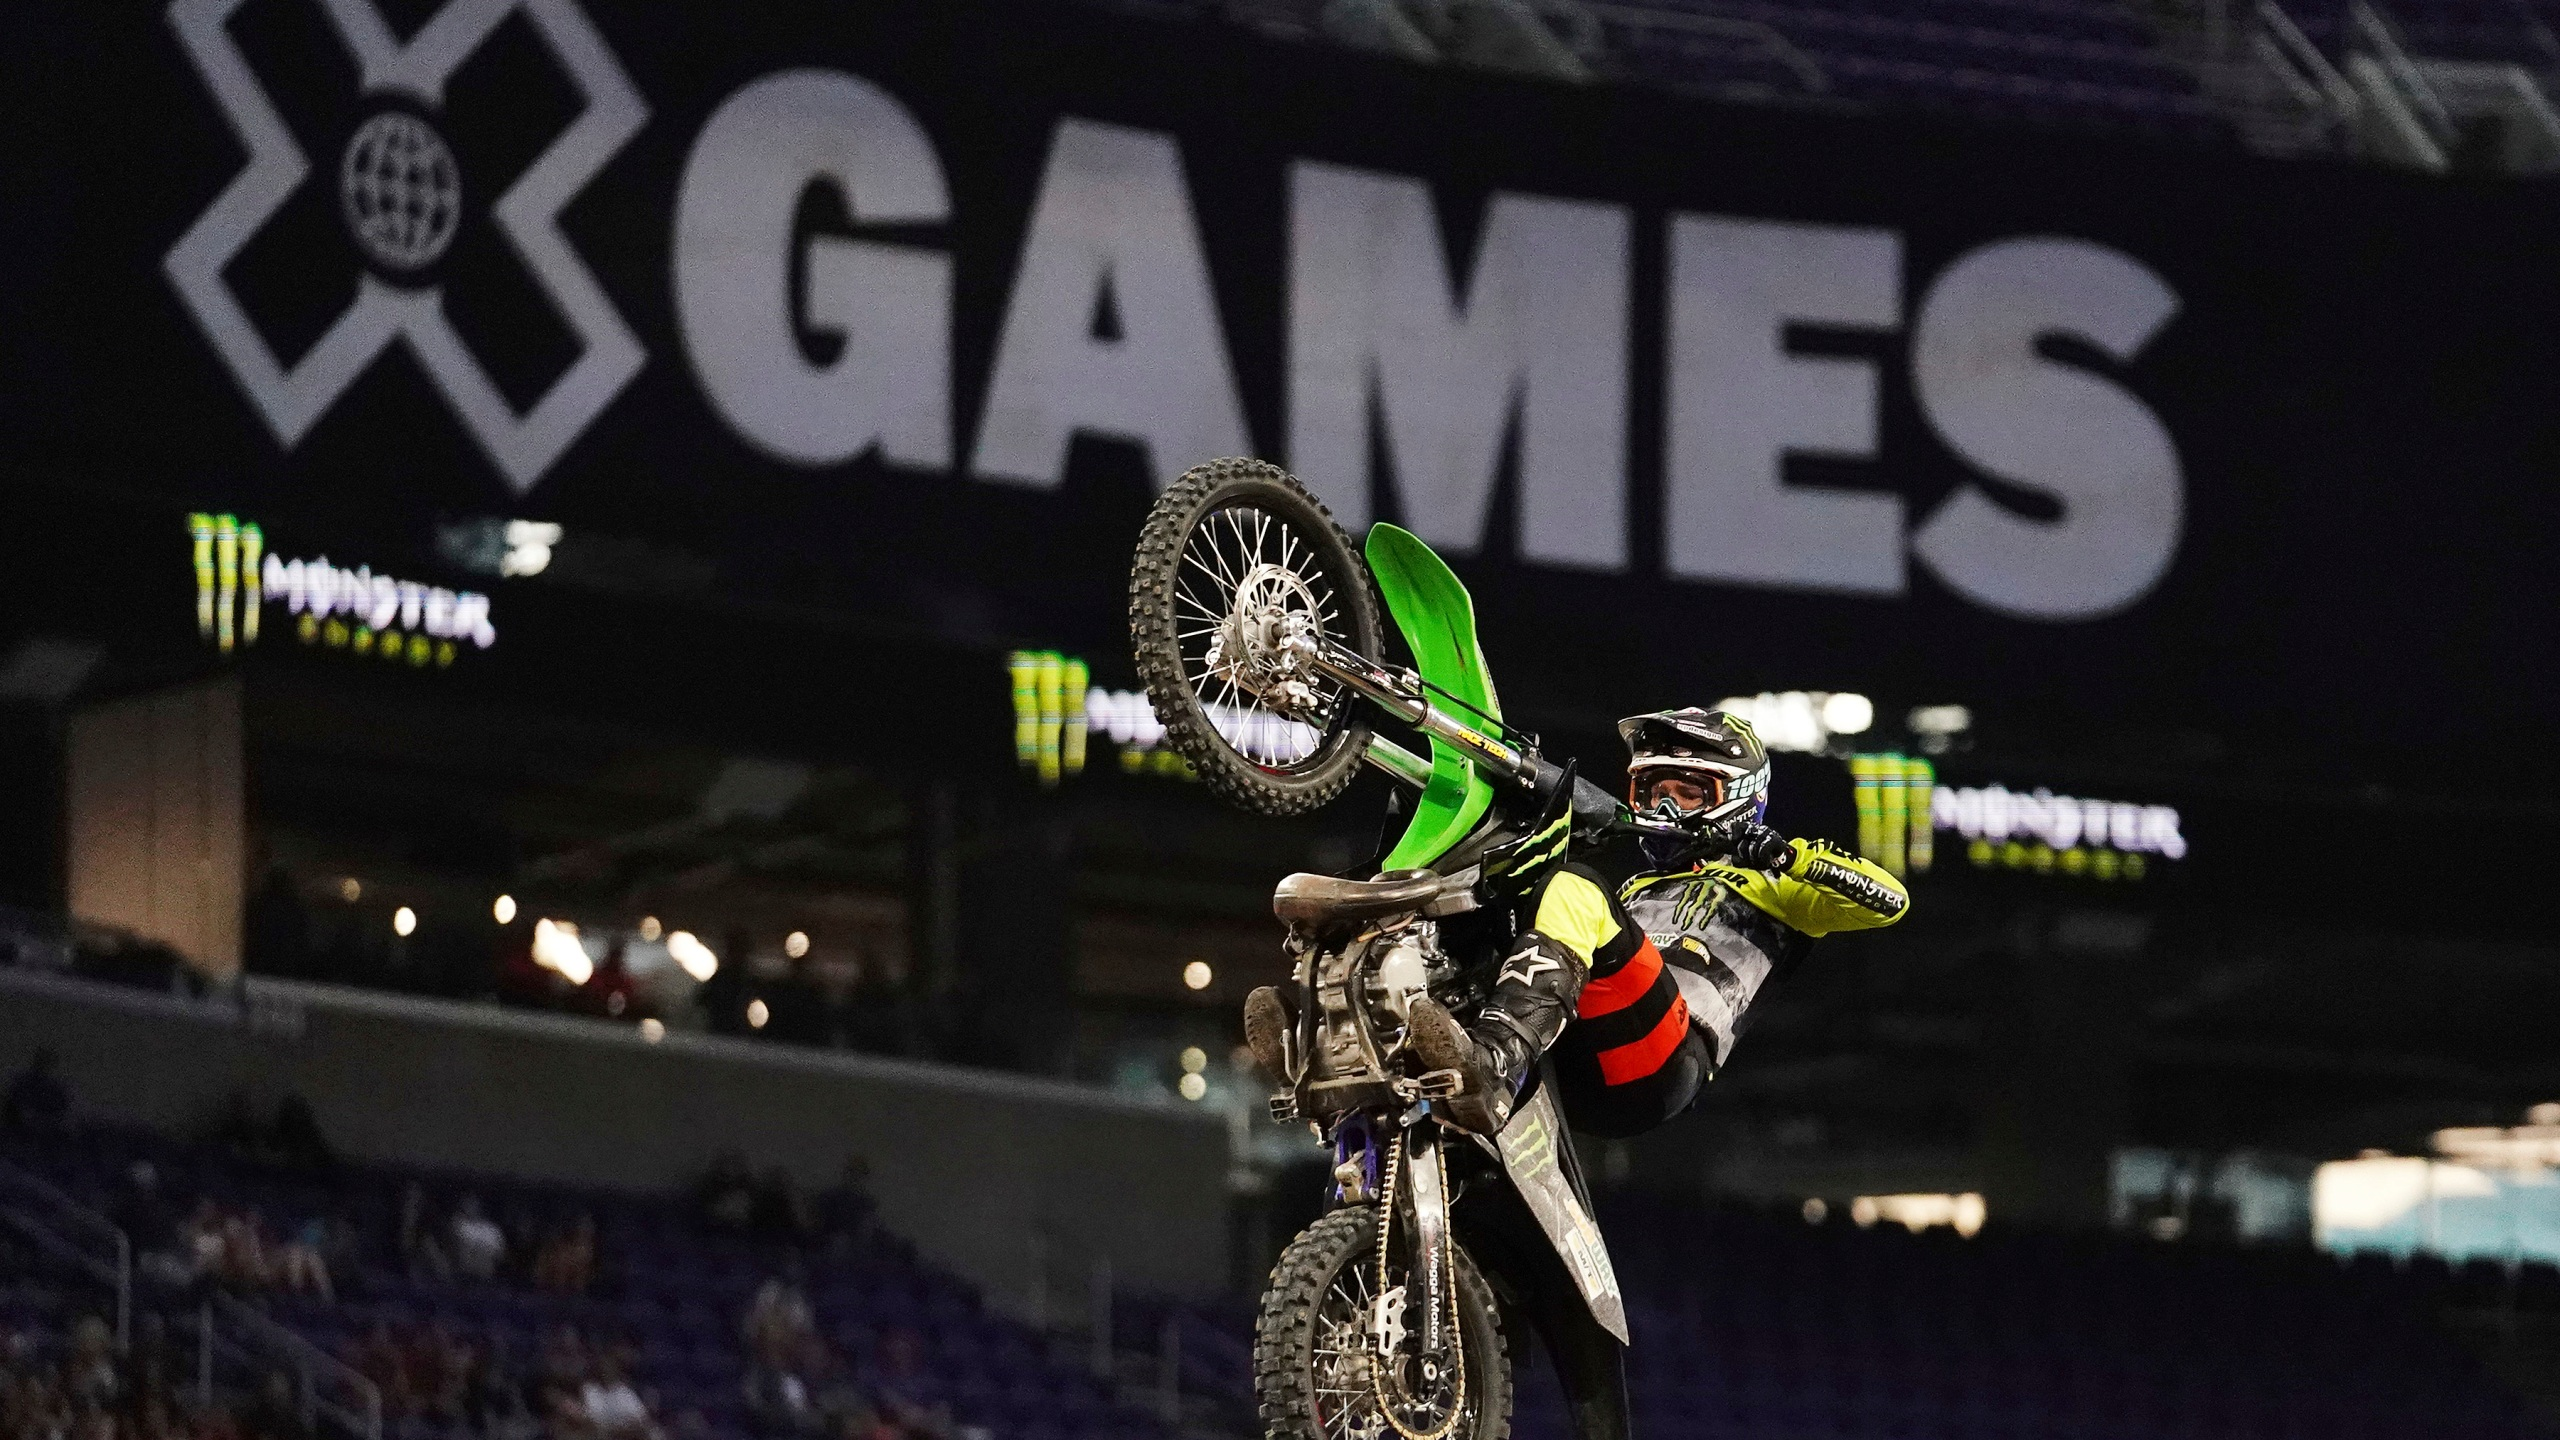 In this July 21, 2018, file photo, Jackson Strong competes in the Monster Energy Moto X Best Trick Final at the X Games in Minneapolis. After taking a year off due to the coronavirus pandemic, X Games is returning to its roots. BMX, Moto X and skateboarding will be contested at three Southern California training locations. (Anthony Souffle/Star Tribune via Associated Press)